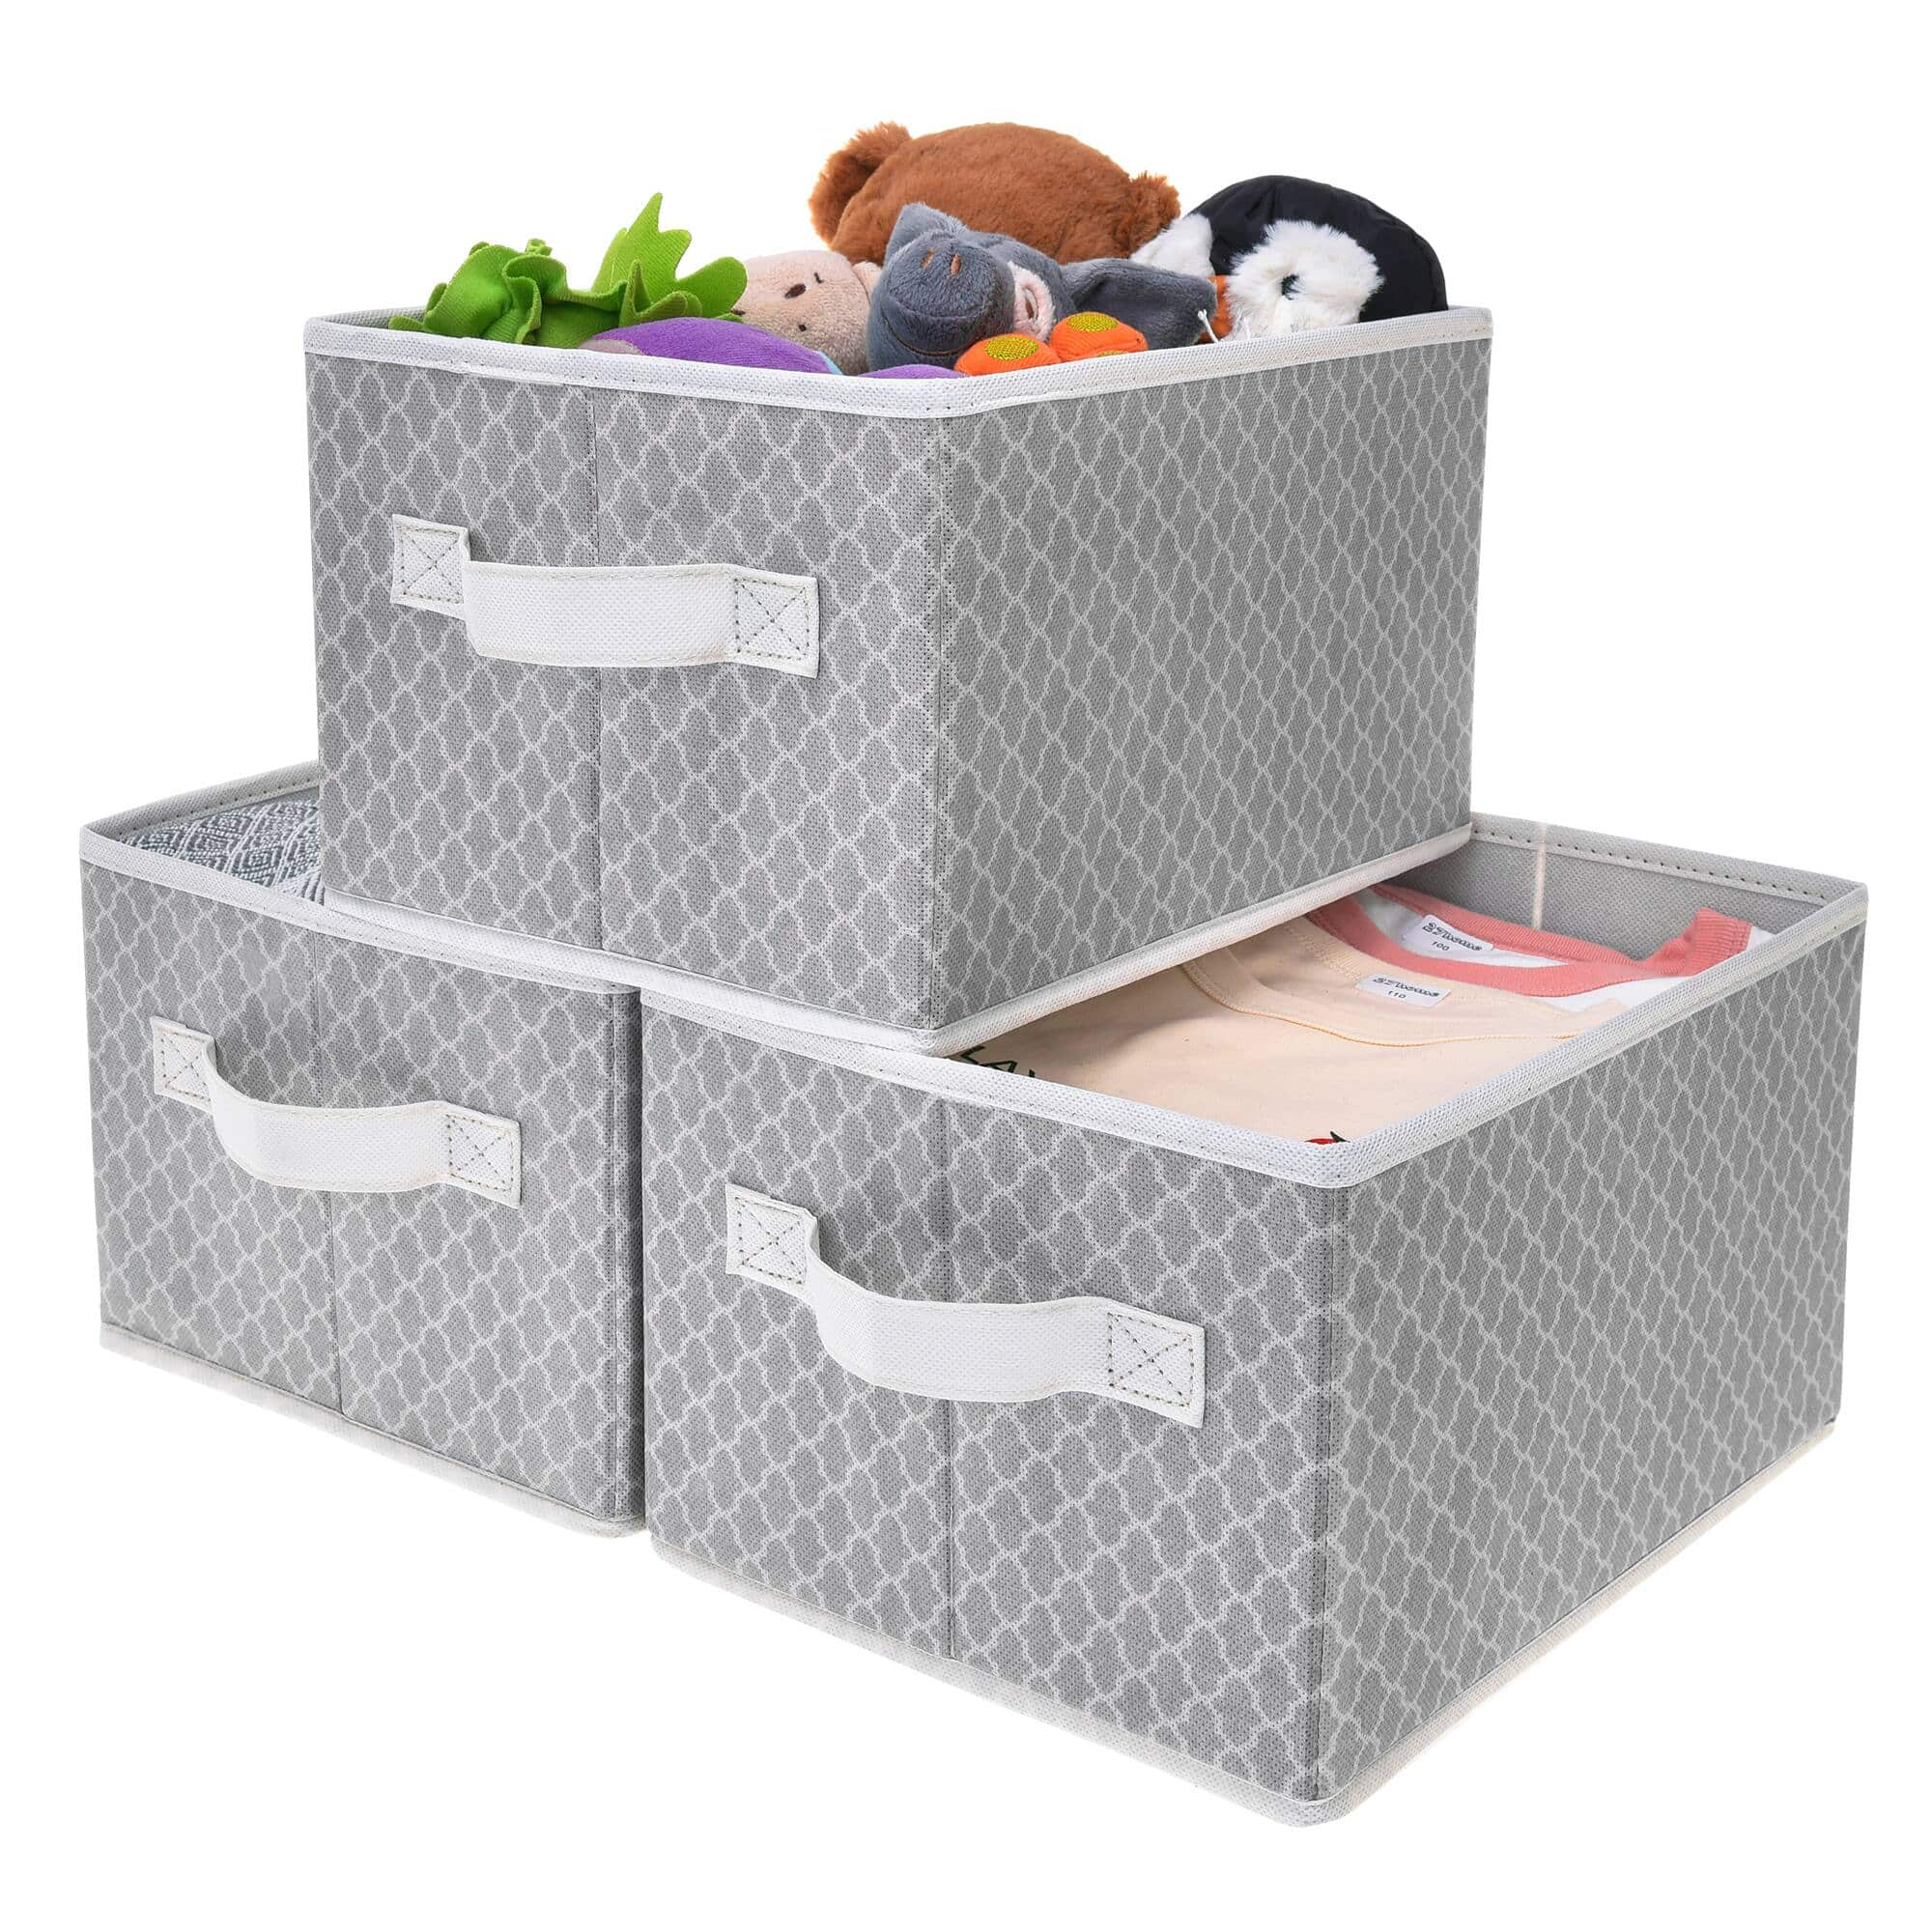 GRANNY SAYS  Kid's Fabric Storage Bin,Gray/Beige, 3-Pack, $12.59-15.59 + Free Shipping w/ Amazon Prime or Orders $25+